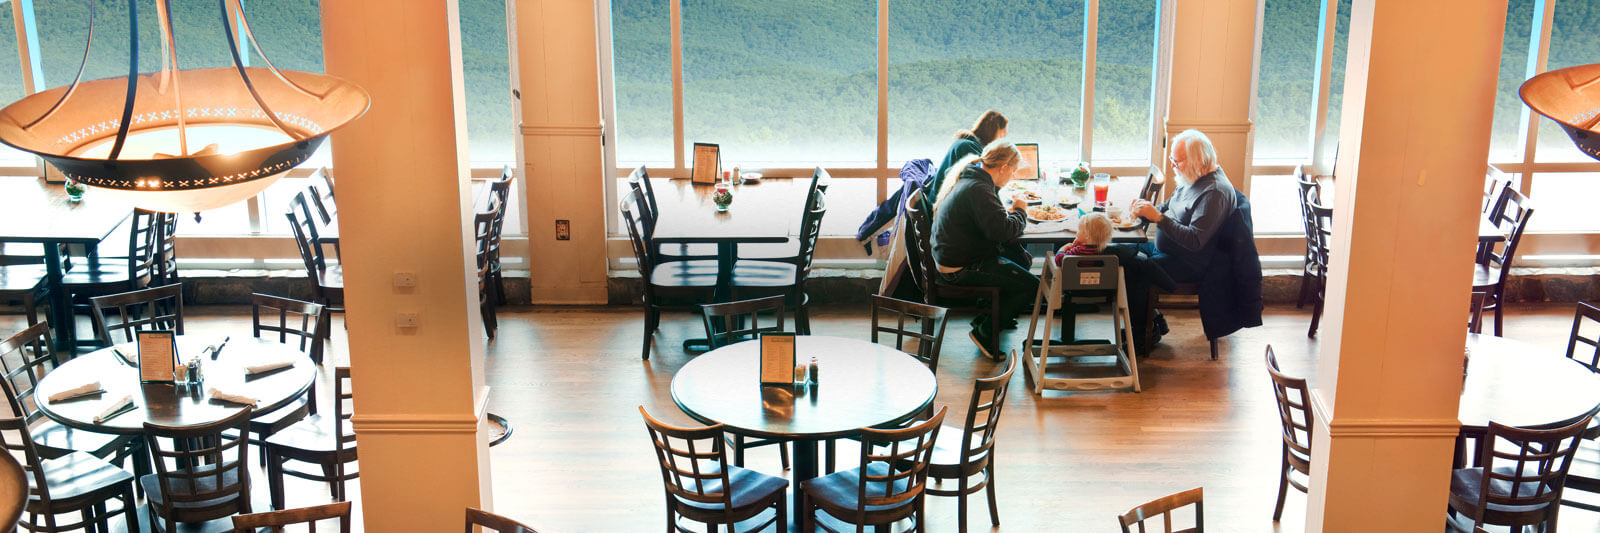 Amicalola Falls Adventure Lodge Dining Weekly Calendar 1